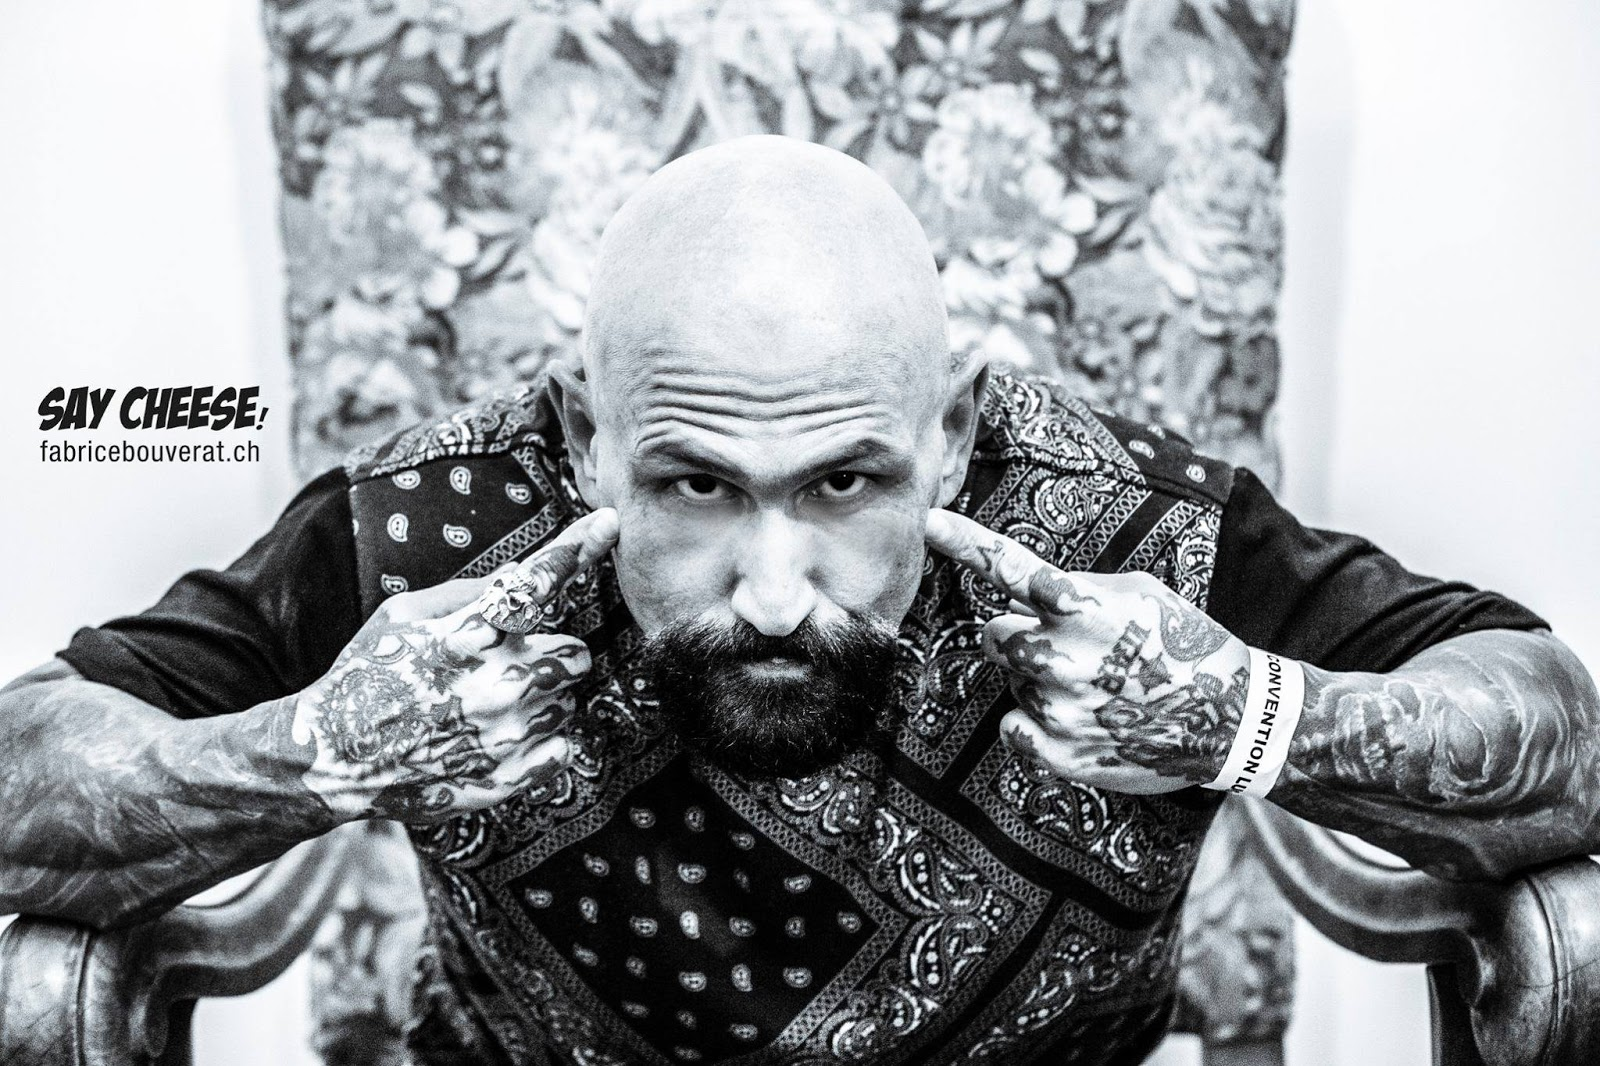 Jet City Comic Show Preview: Q&A With Actor Robert Lasardo